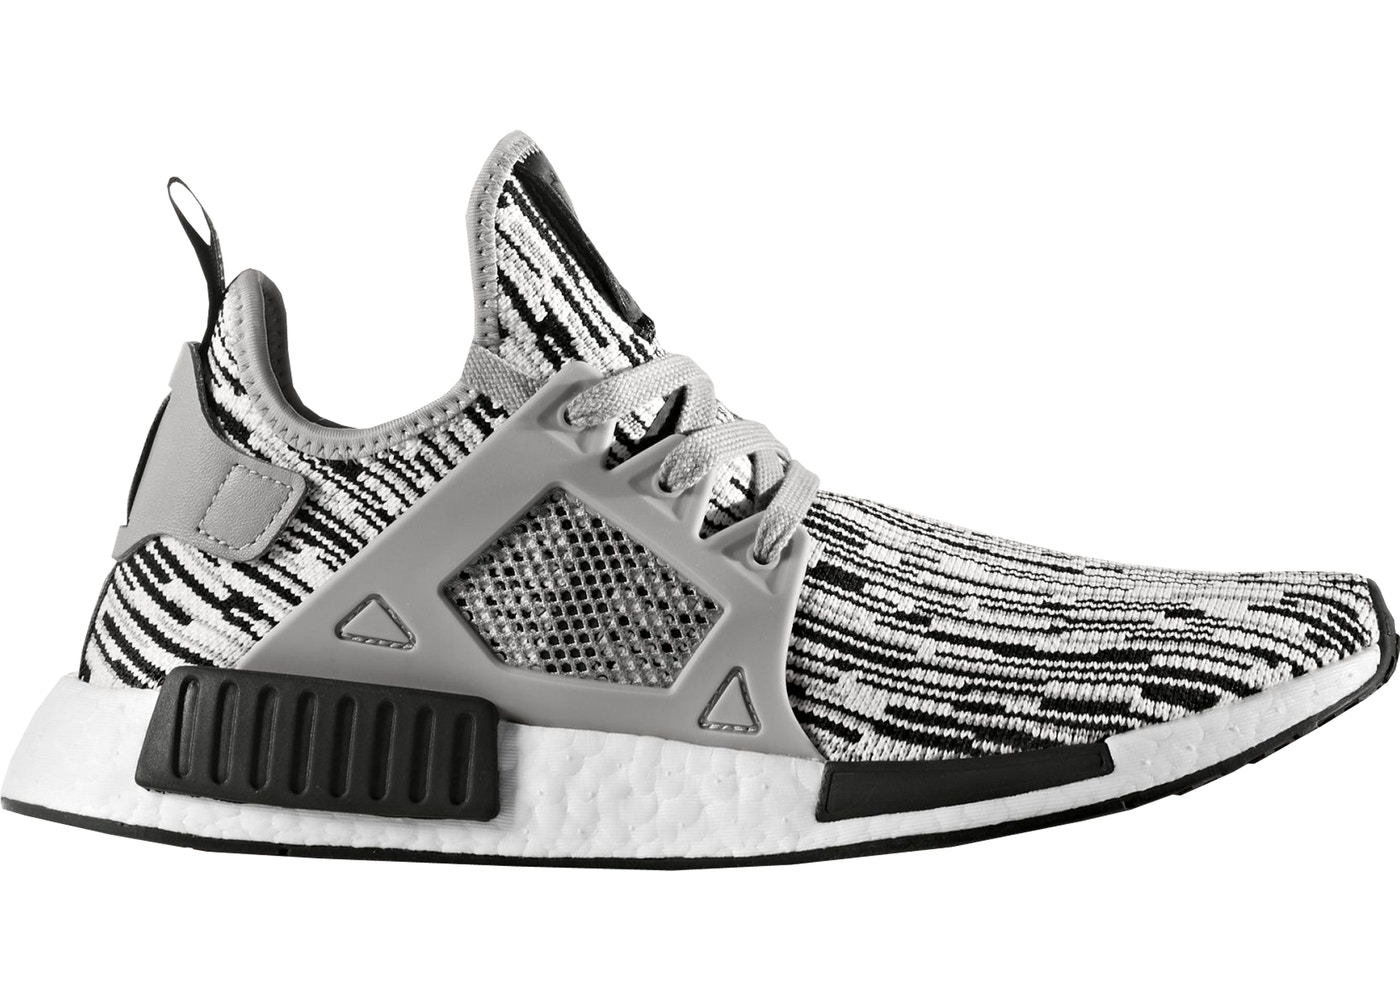 reputable site e3db8 70689 Buy adidas NMD XR1 Shoes & Deadstock Sneakers